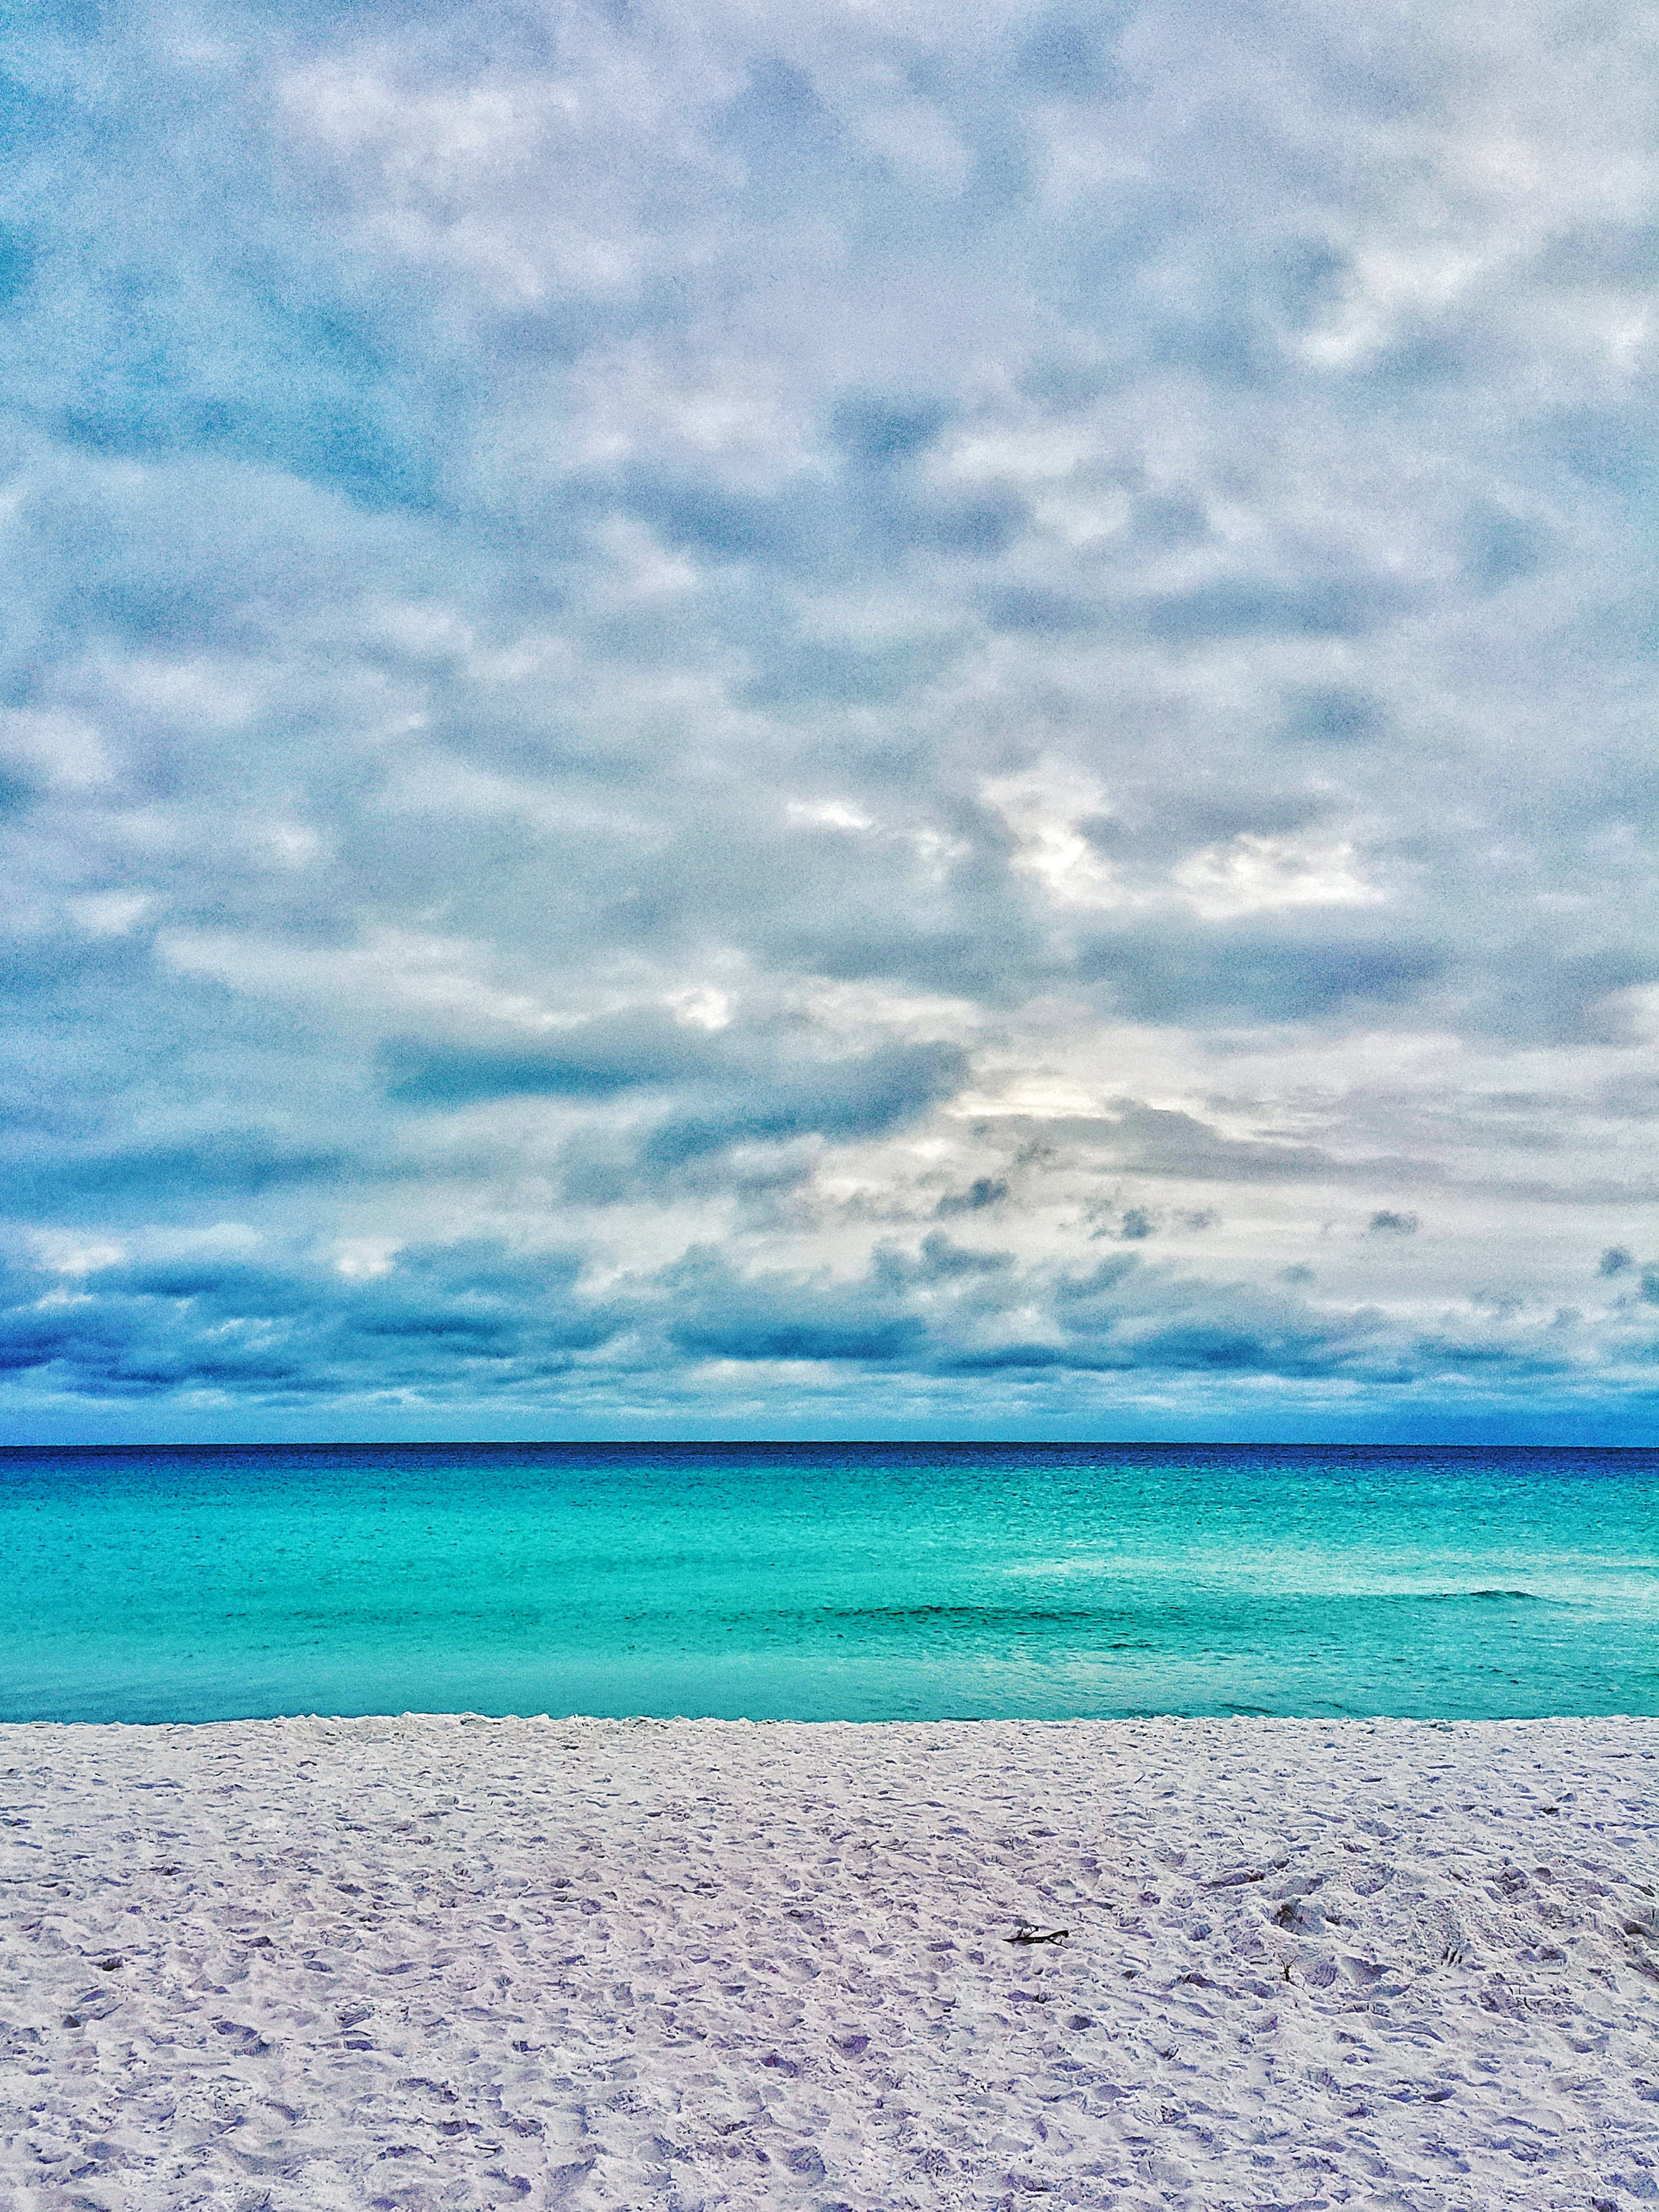 Free stock photo of beach, clouds, element, nature